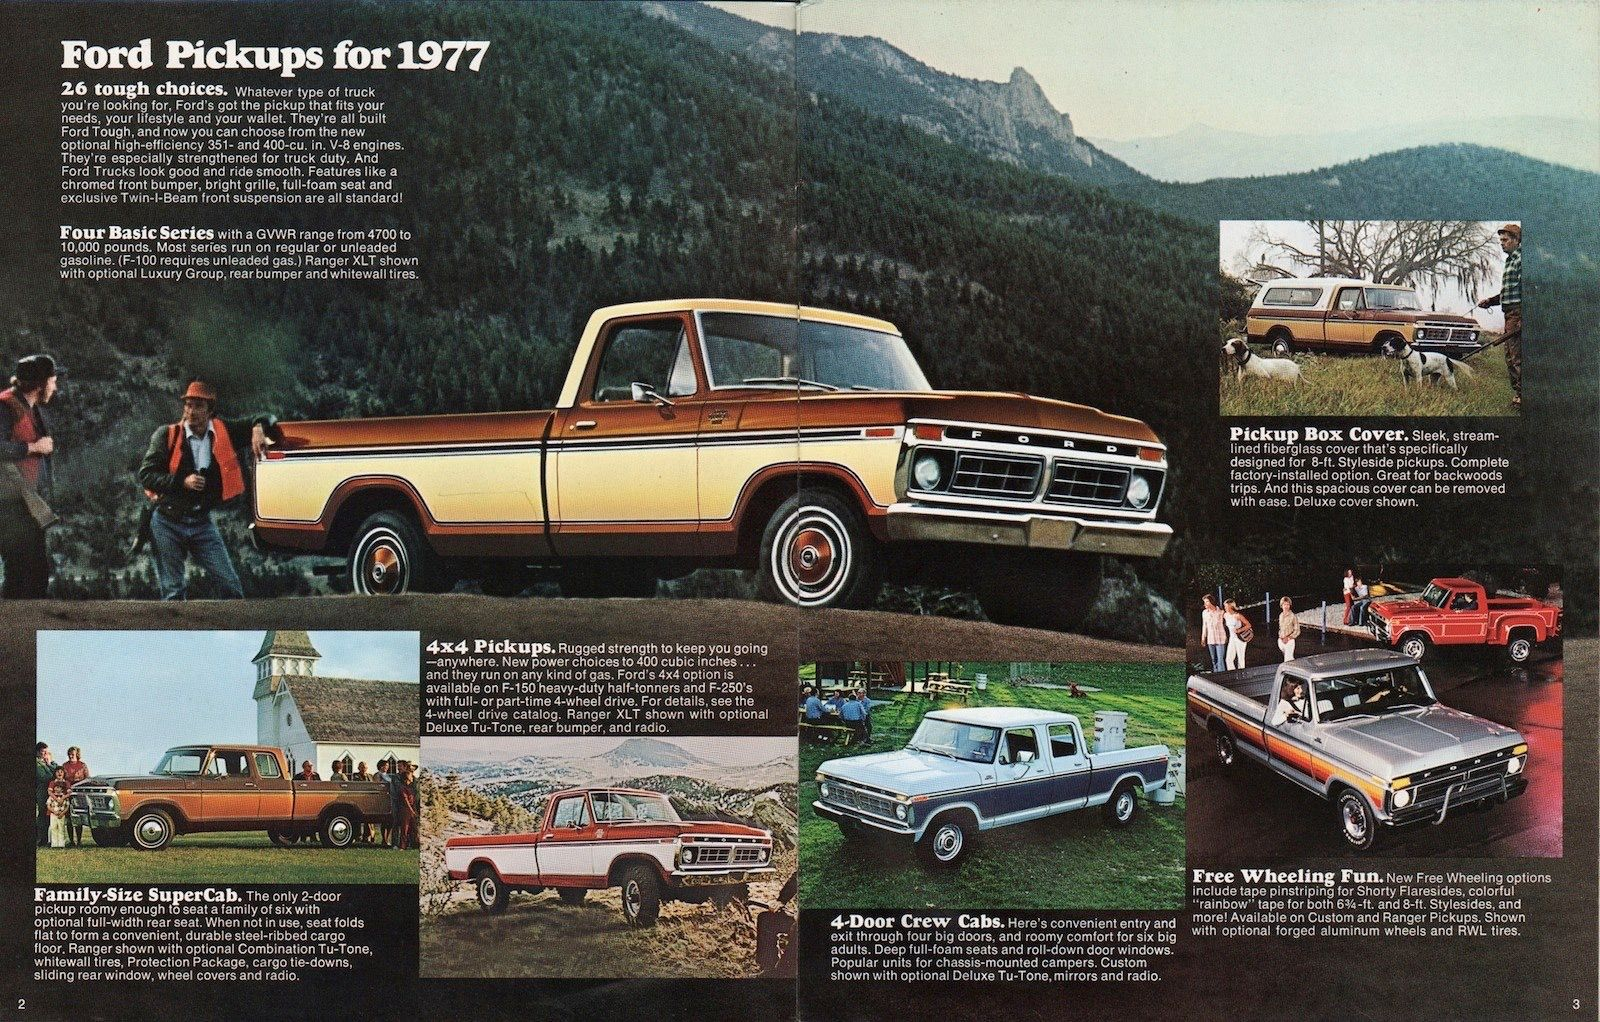 Pin by Herb Jure on 70\'s Ford trucks | Pinterest | Ford trucks and ...